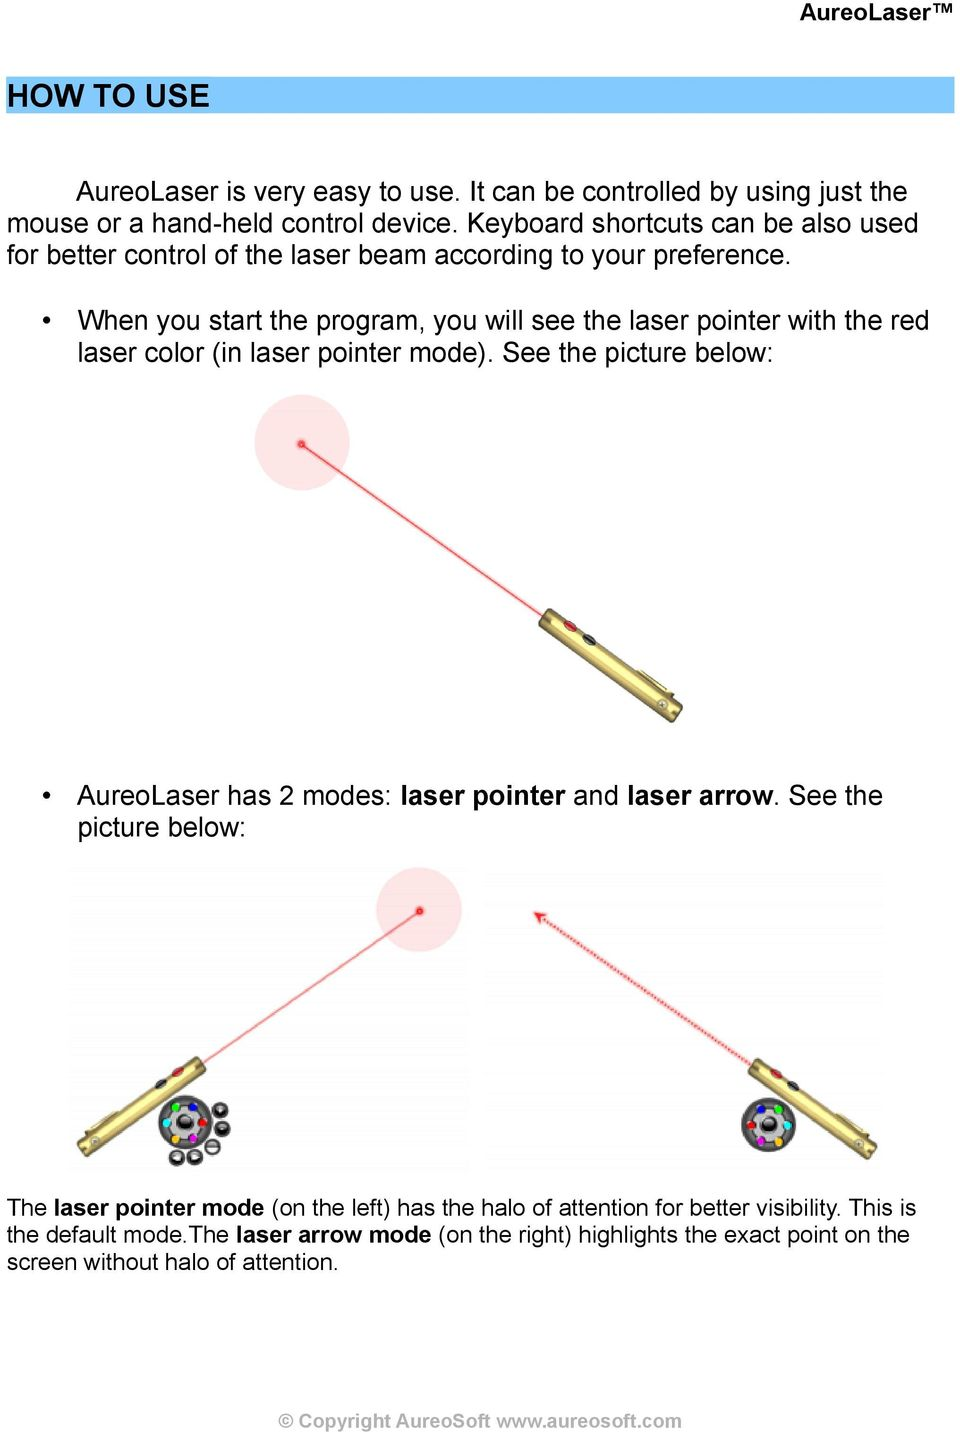 When you start the program, you will see the laser pointer with the red laser color (in laser pointer mode).